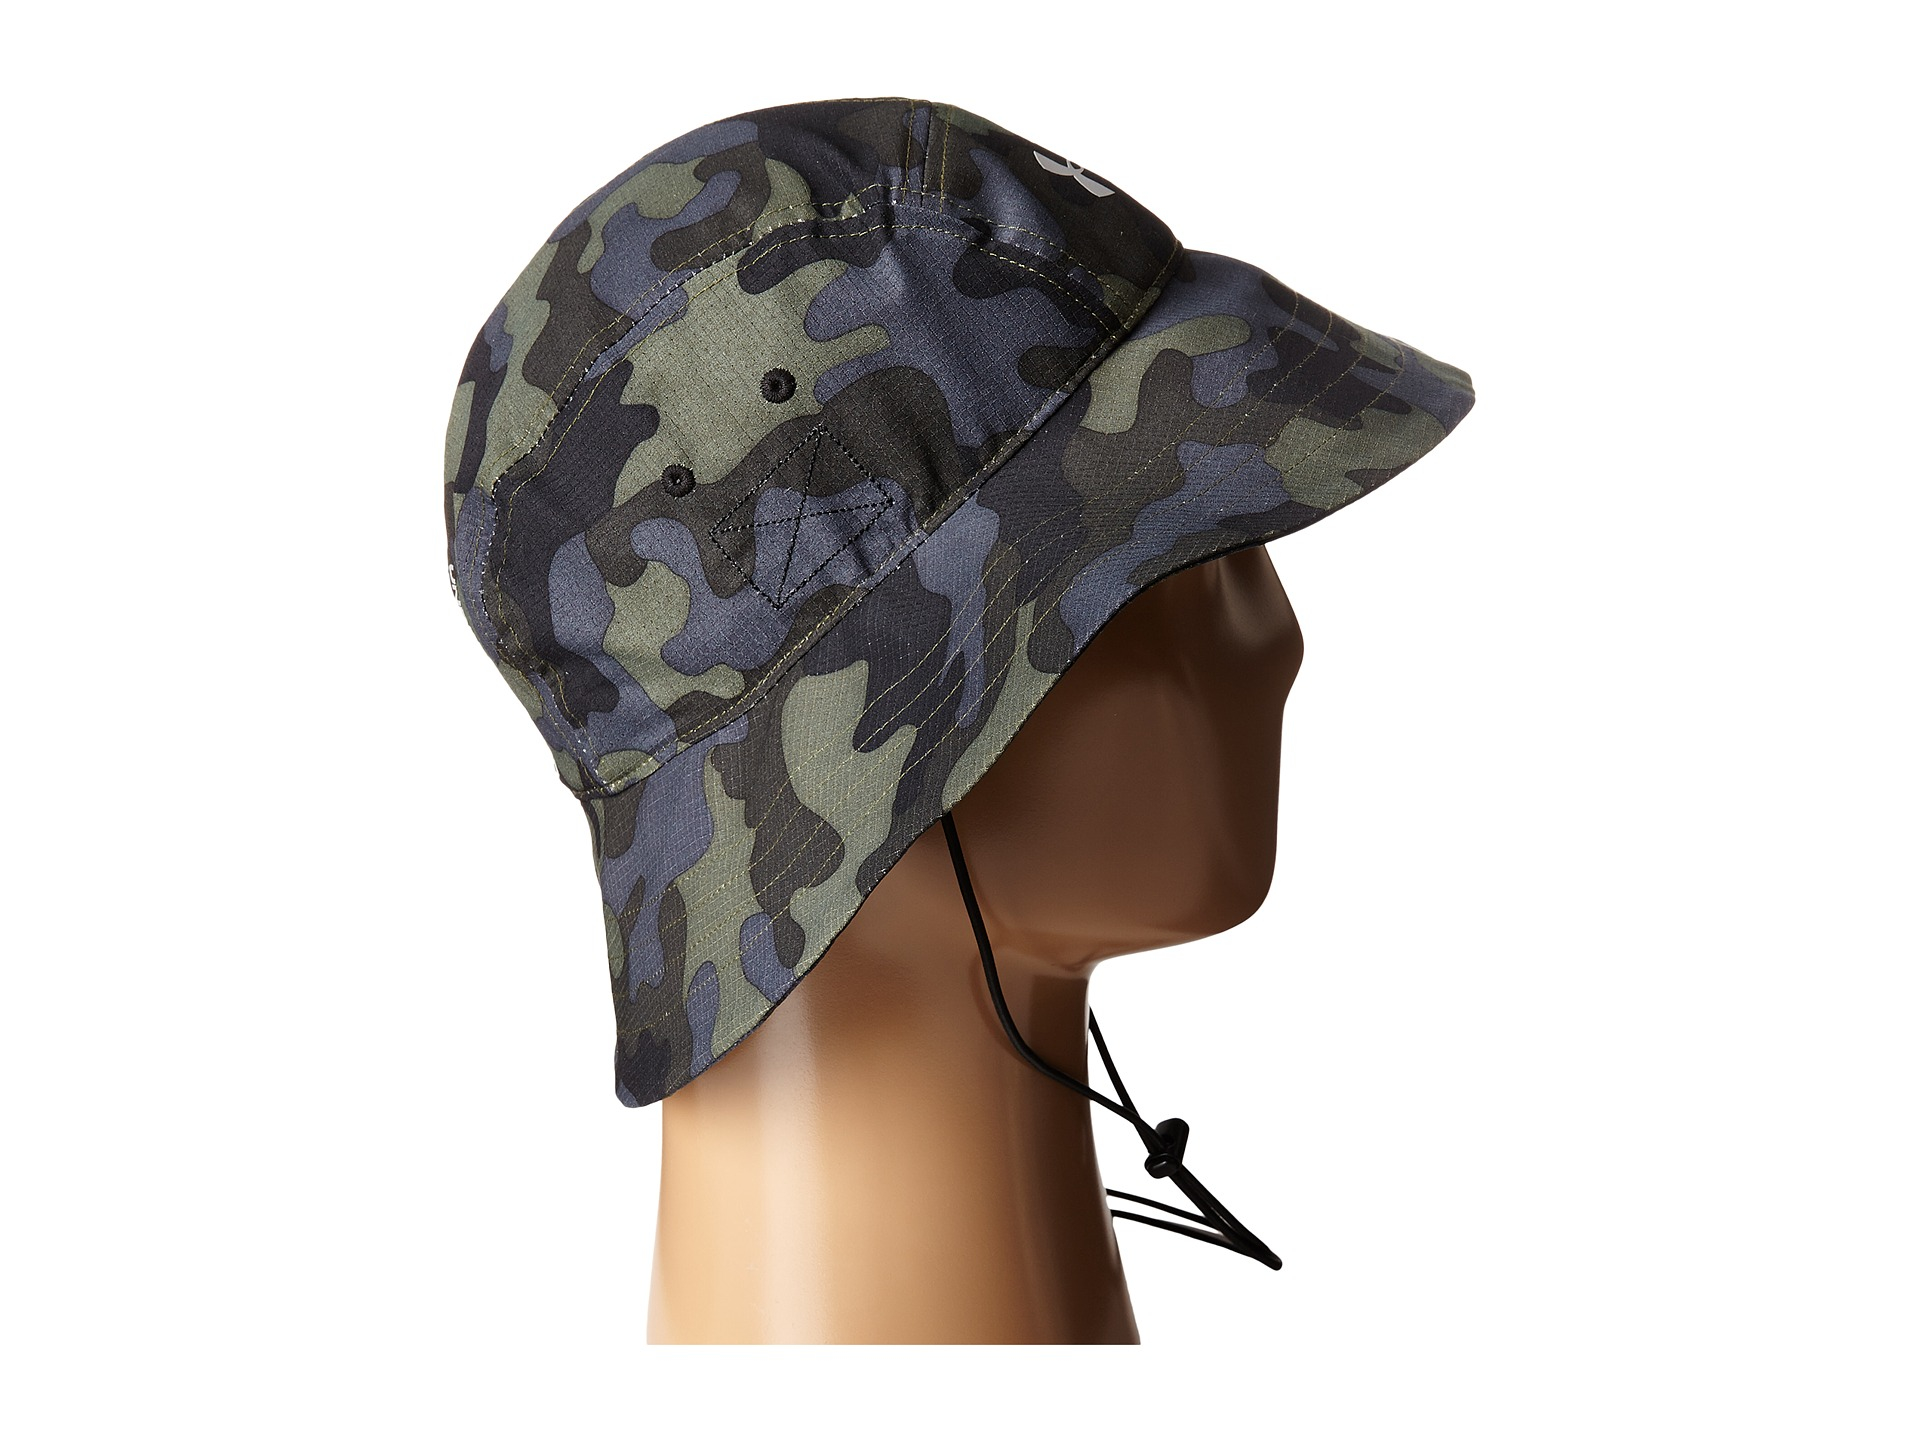 Lyst - Under Armour Ua Airvent Bucket Hat in Green for Men 19a9fc3e110